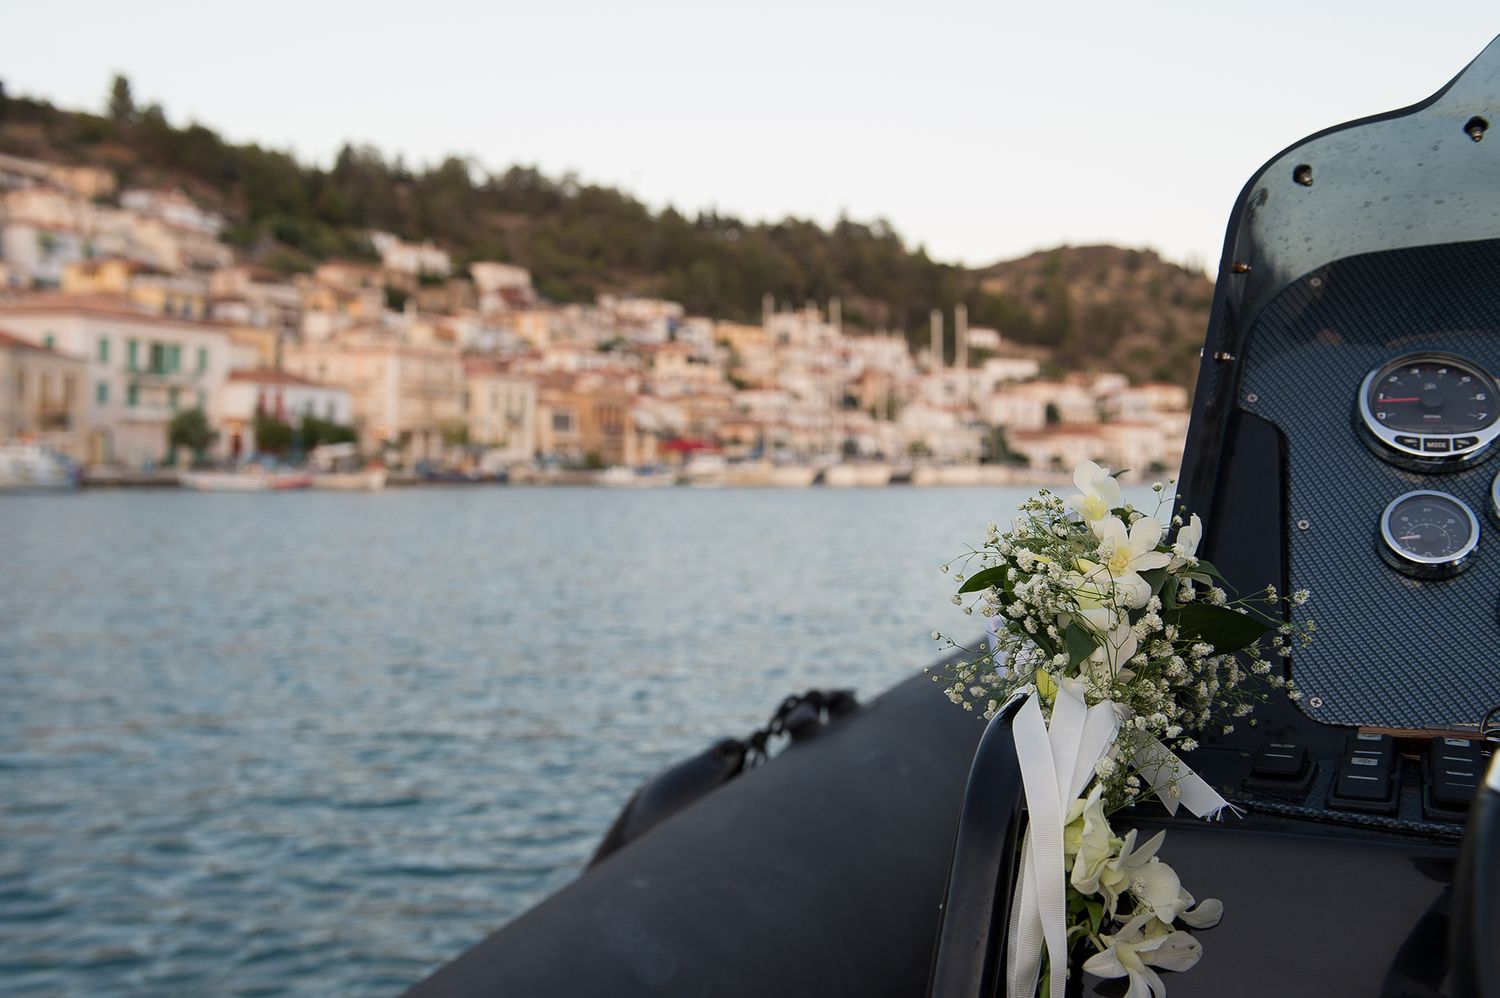 flower detail of boat with poros island in the background